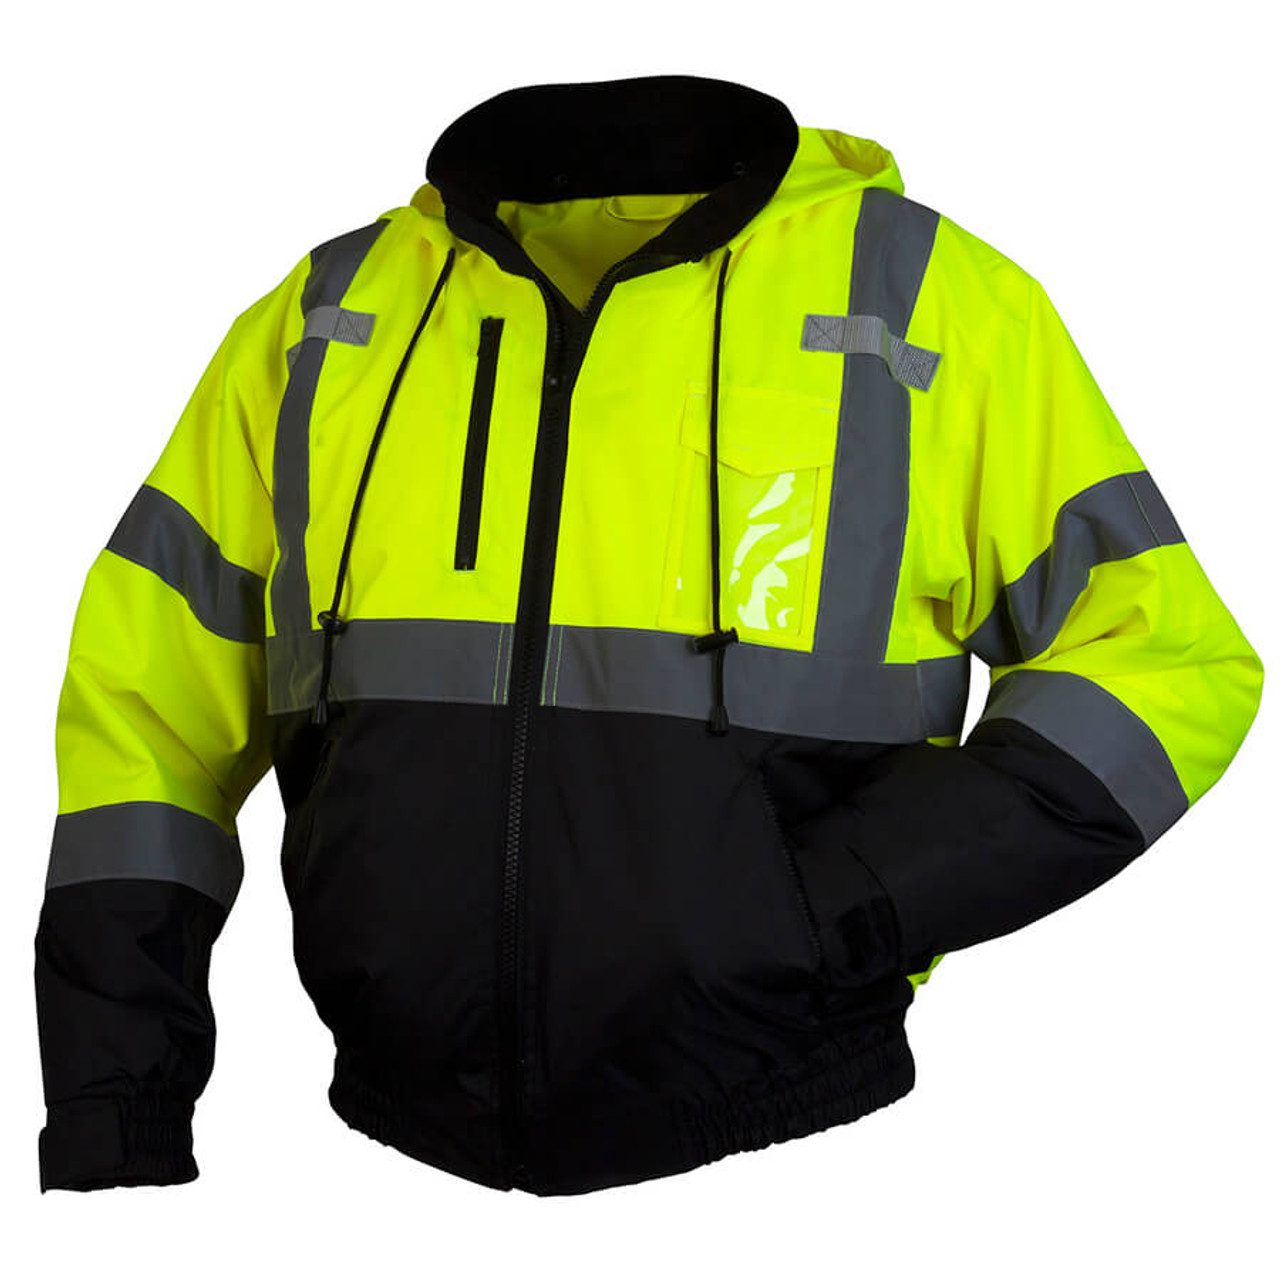 Pyramex Lumen X Rj31 Class 3 Safety Jacket Free Shipping